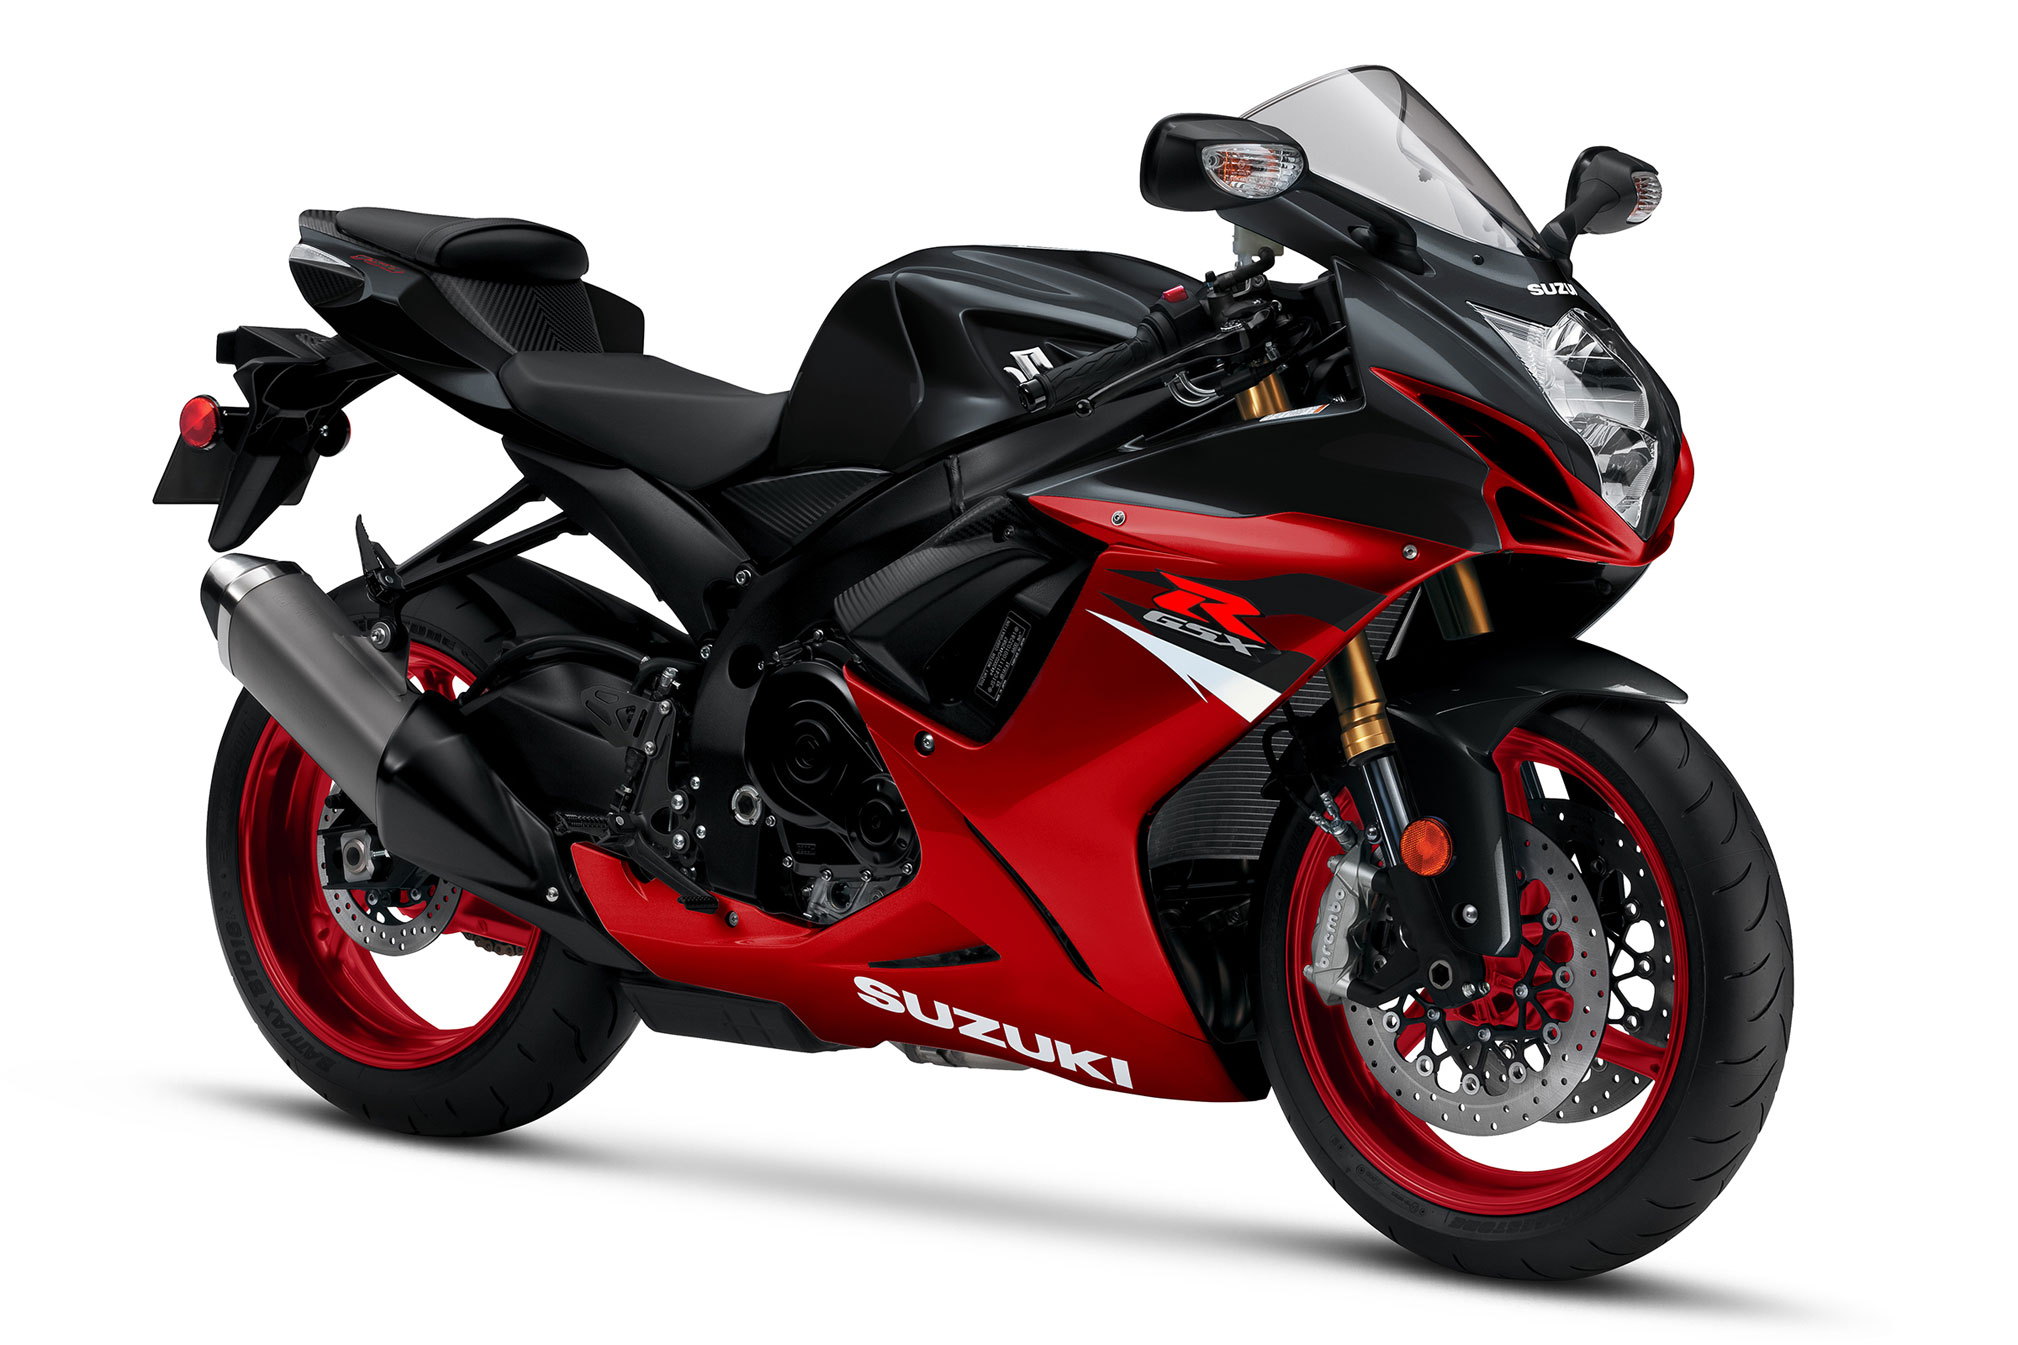 Suzuki Gsxr 750 >> 2018 Suzuki Gsx R750 Review Total Motorcycle